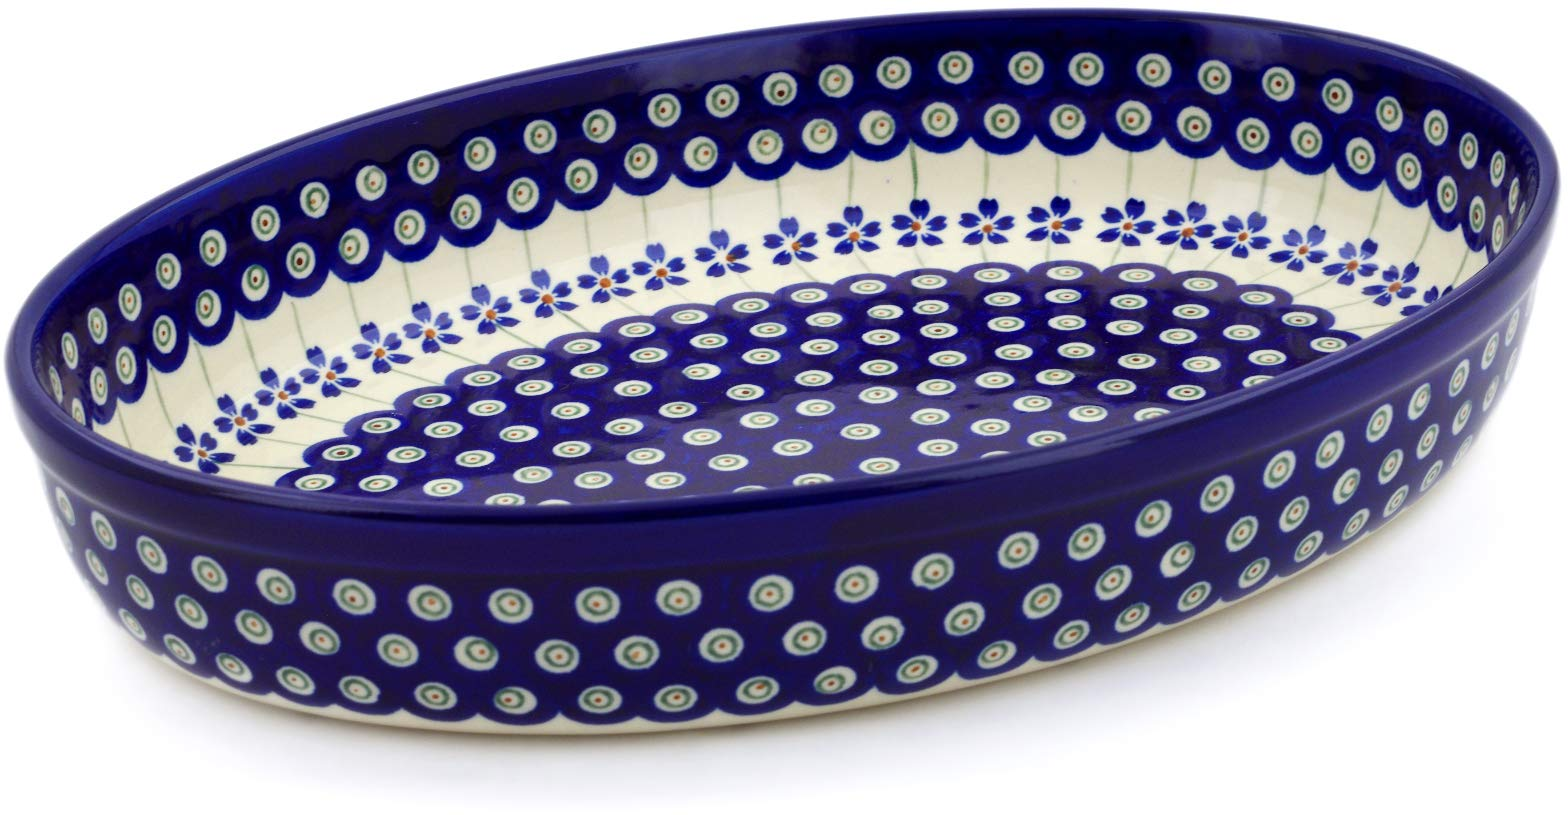 Polish Pottery 12½-inch Oval Baker (Flowering Peacock Theme) + Certificate of Authenticity